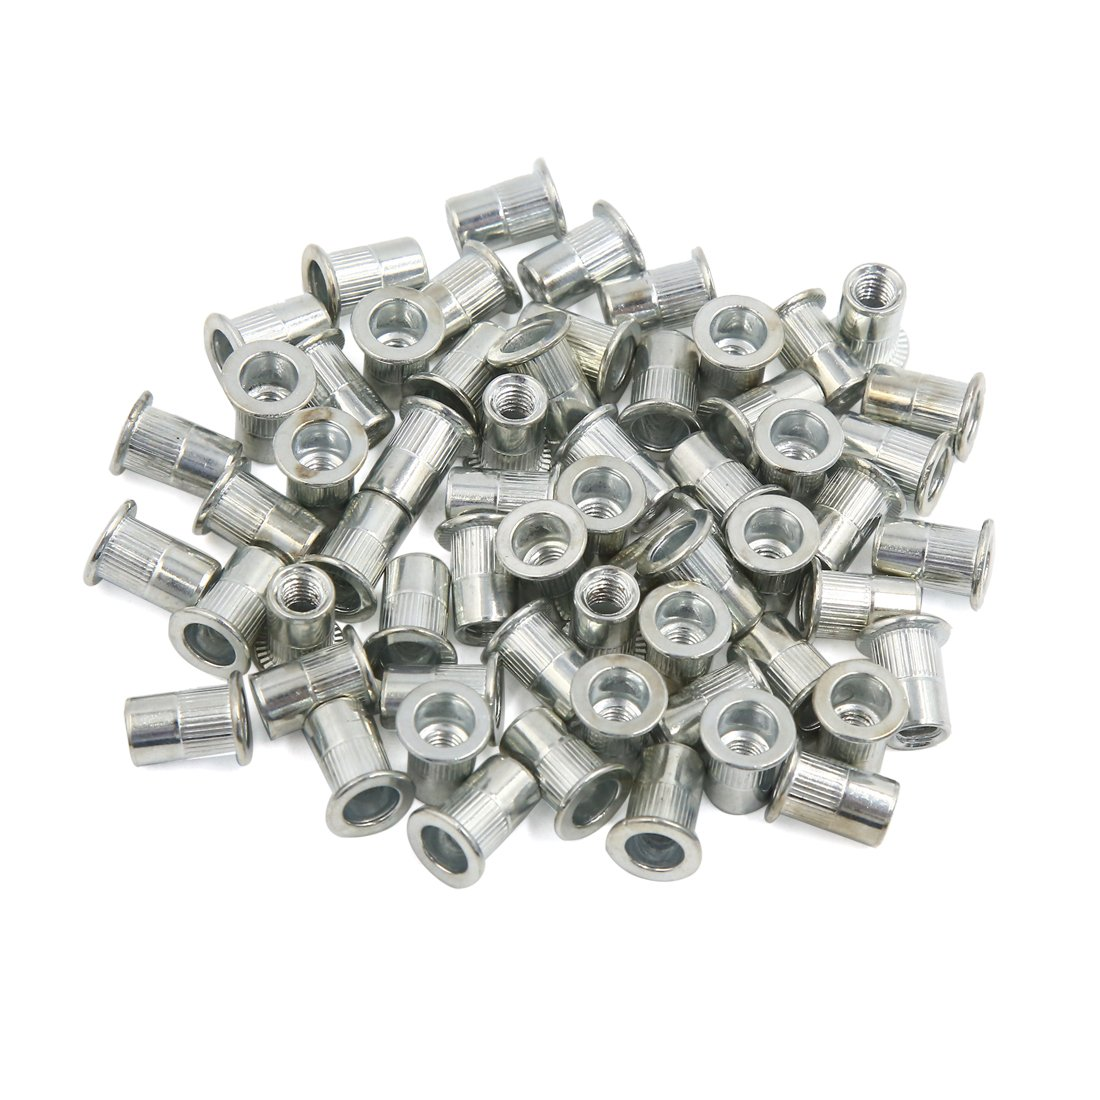 uxcell a16073000ux1878 Rivet Nut, 60 Pack Unknown